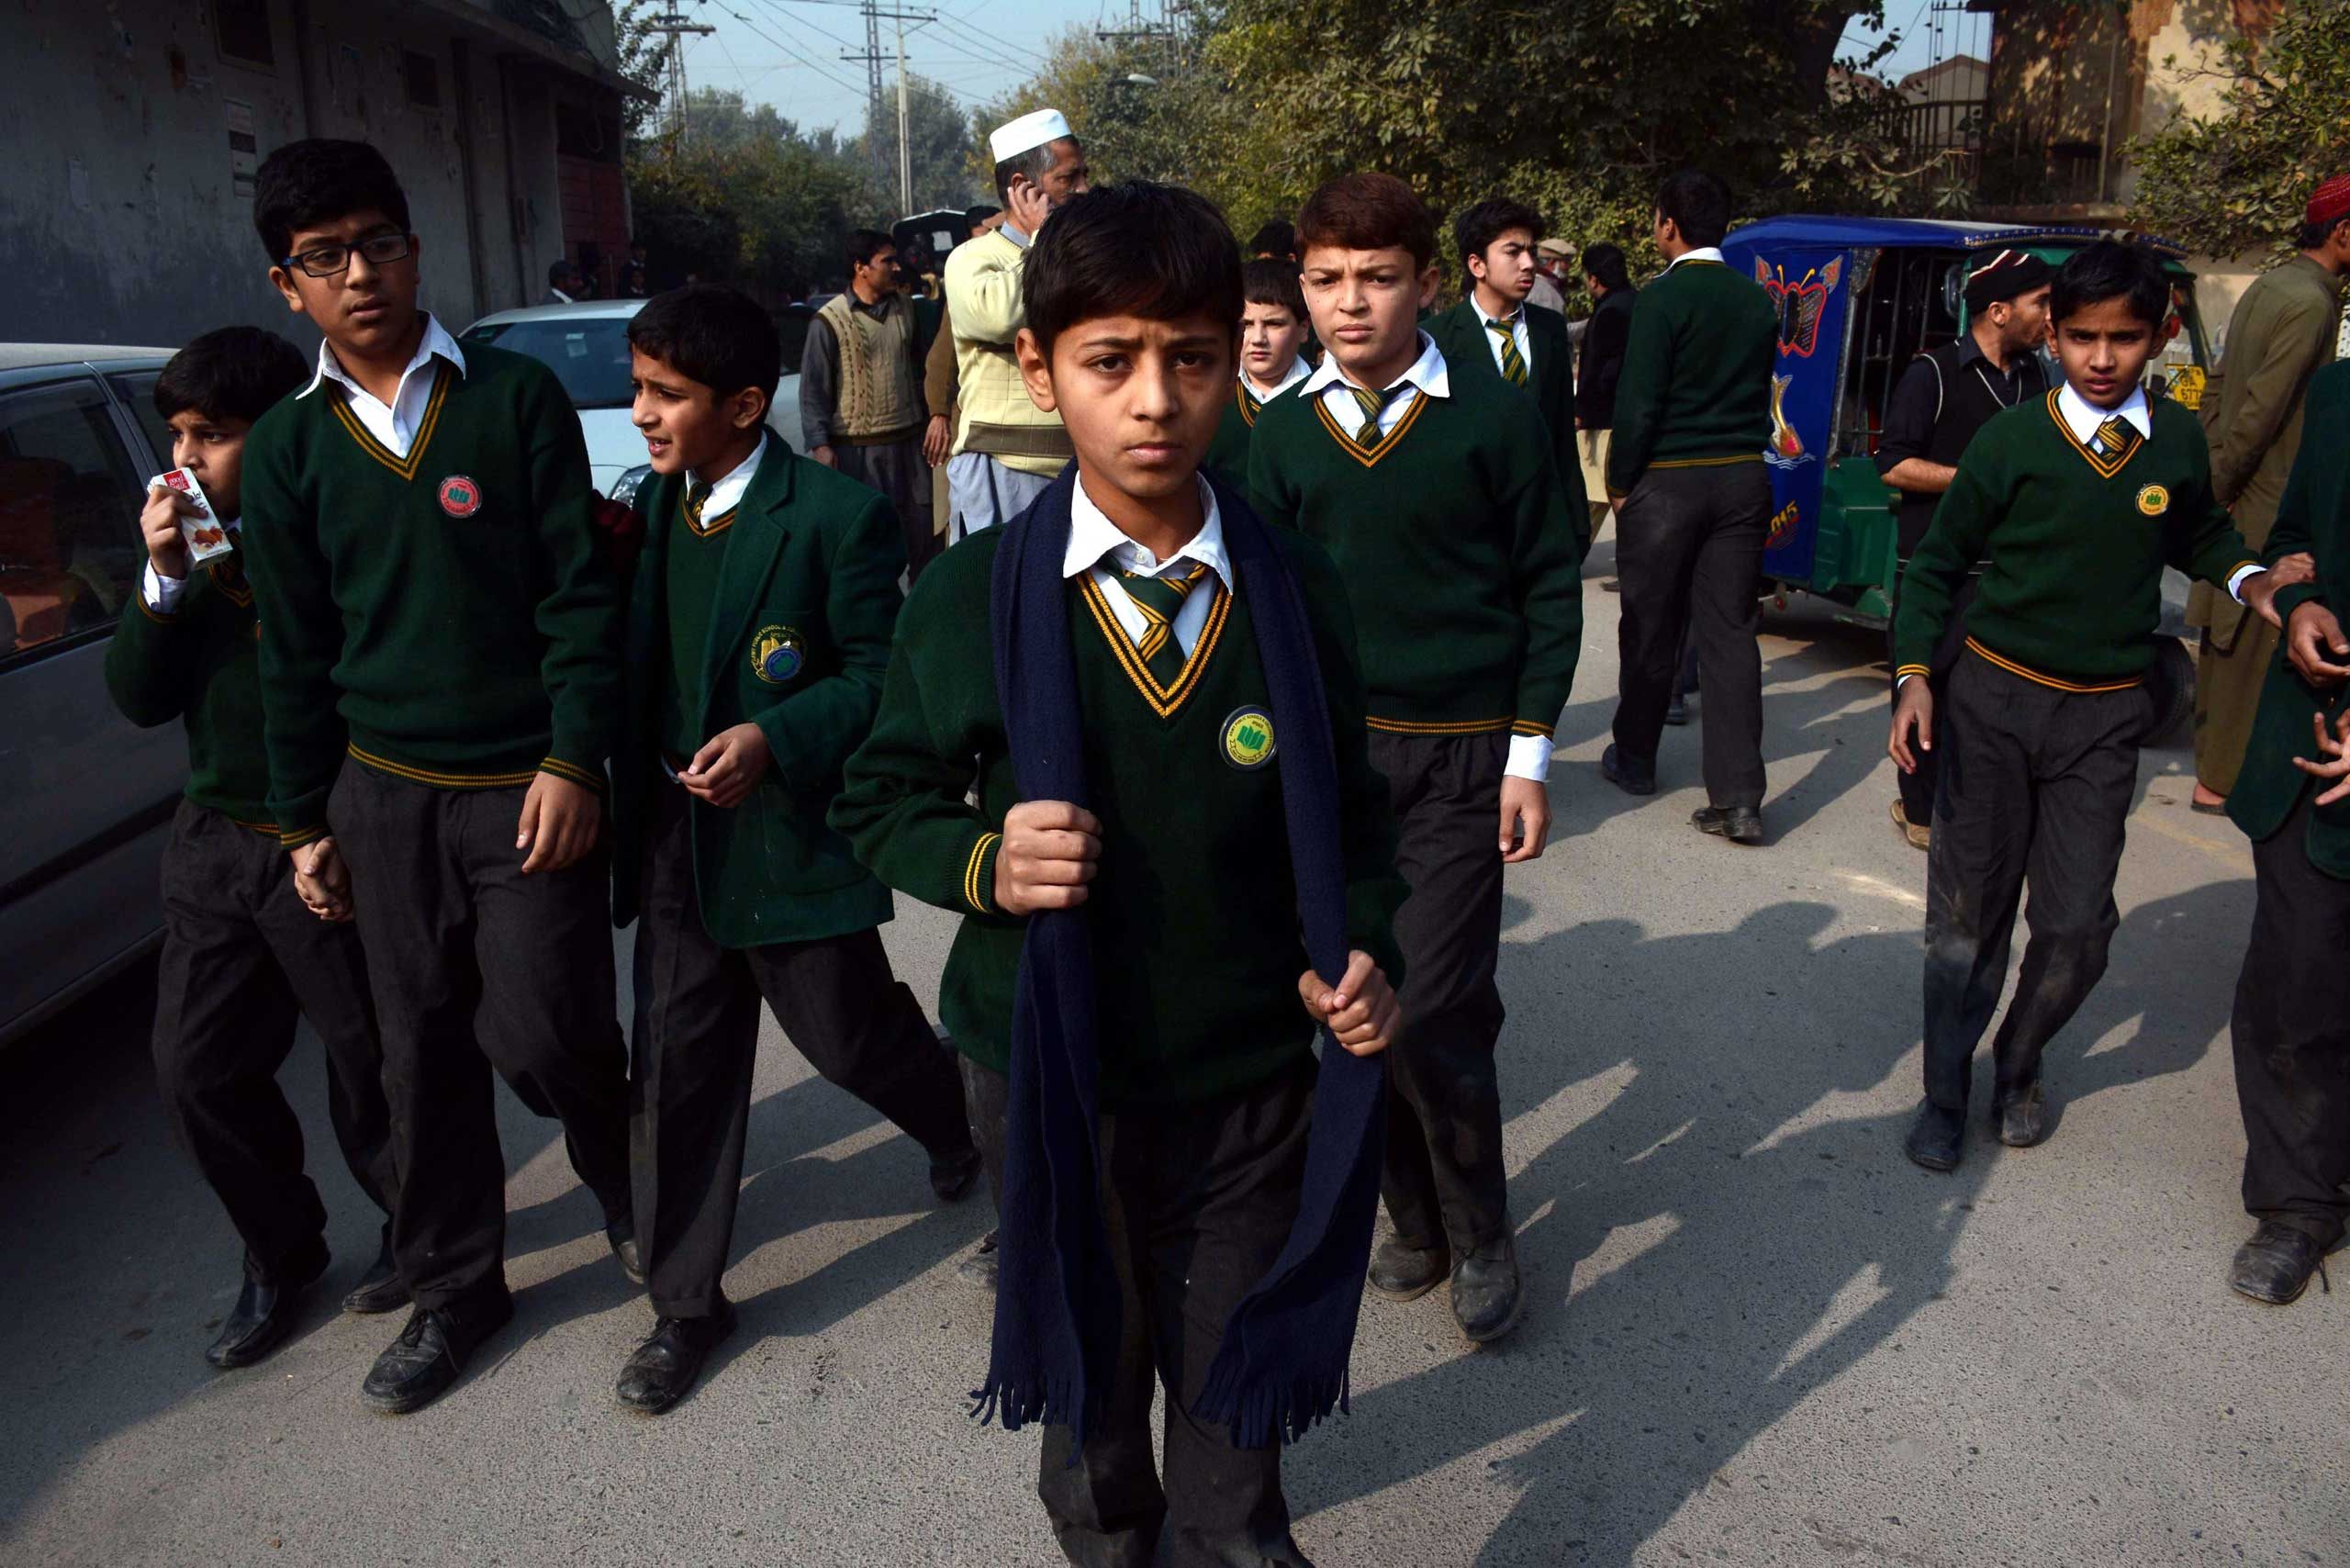 School children rescued by Pakistani security forces leave following an attack at the Army run school, in Peshawar on Dec. 16, 2014.